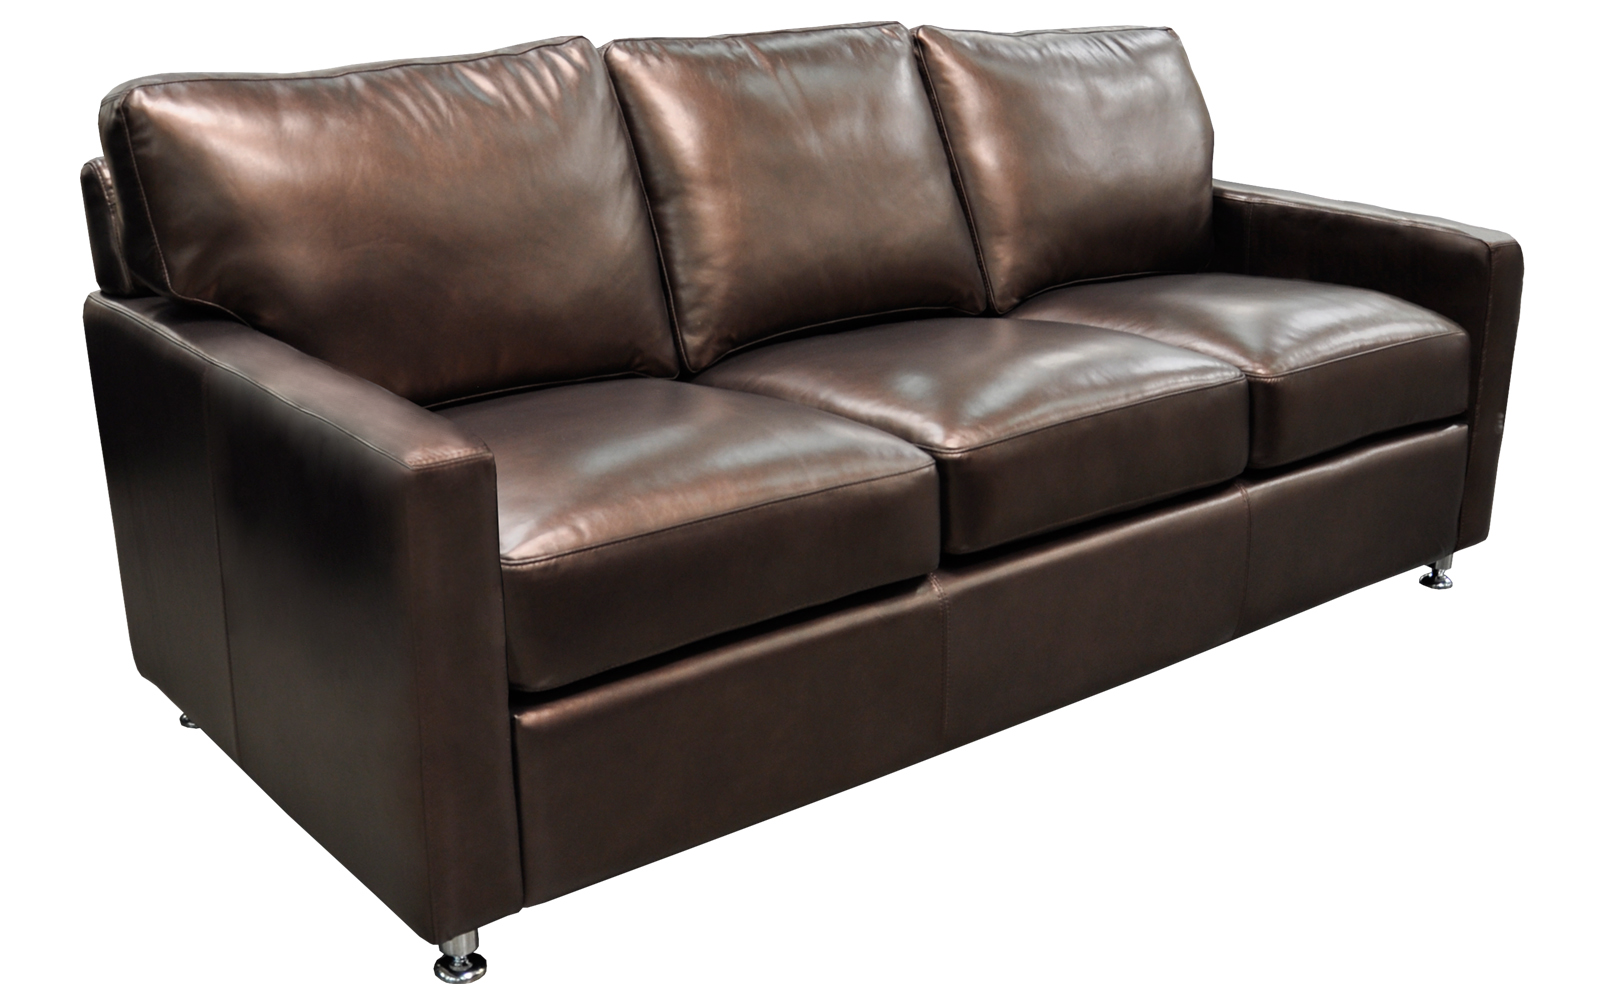 Stationary Solutions 206 S/M/L Sofa – Arizona Leather Interiors